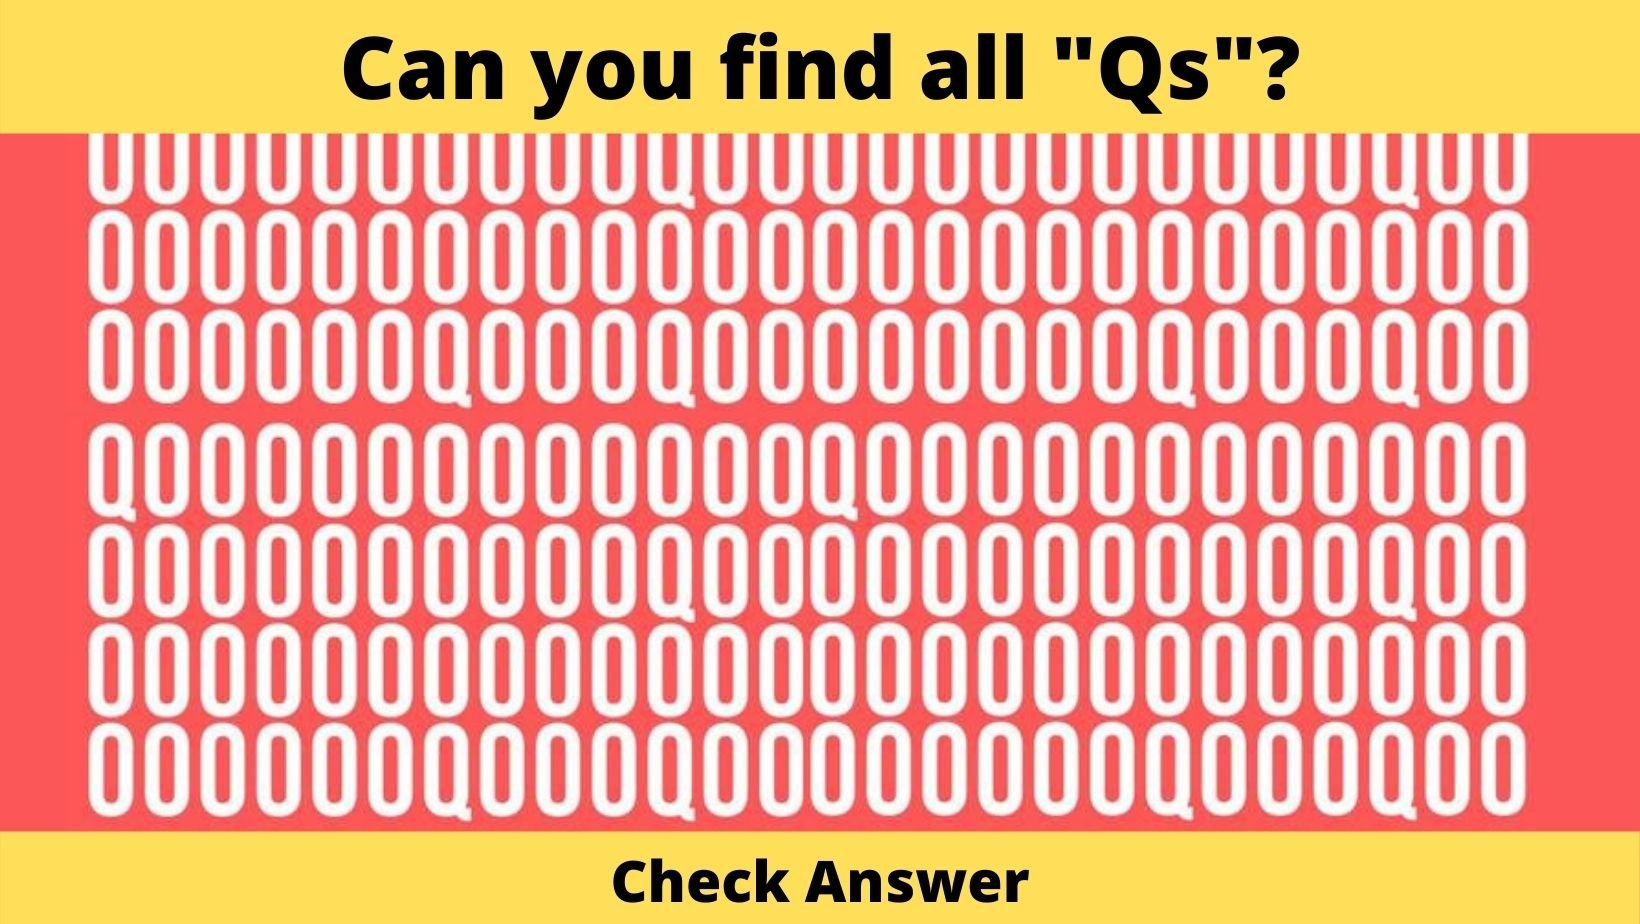 small joys thumbnail 3 4.jpg?resize=1200,630 - Only Few People Can Find ALL 'Qs' In The Image On Their First Attempt